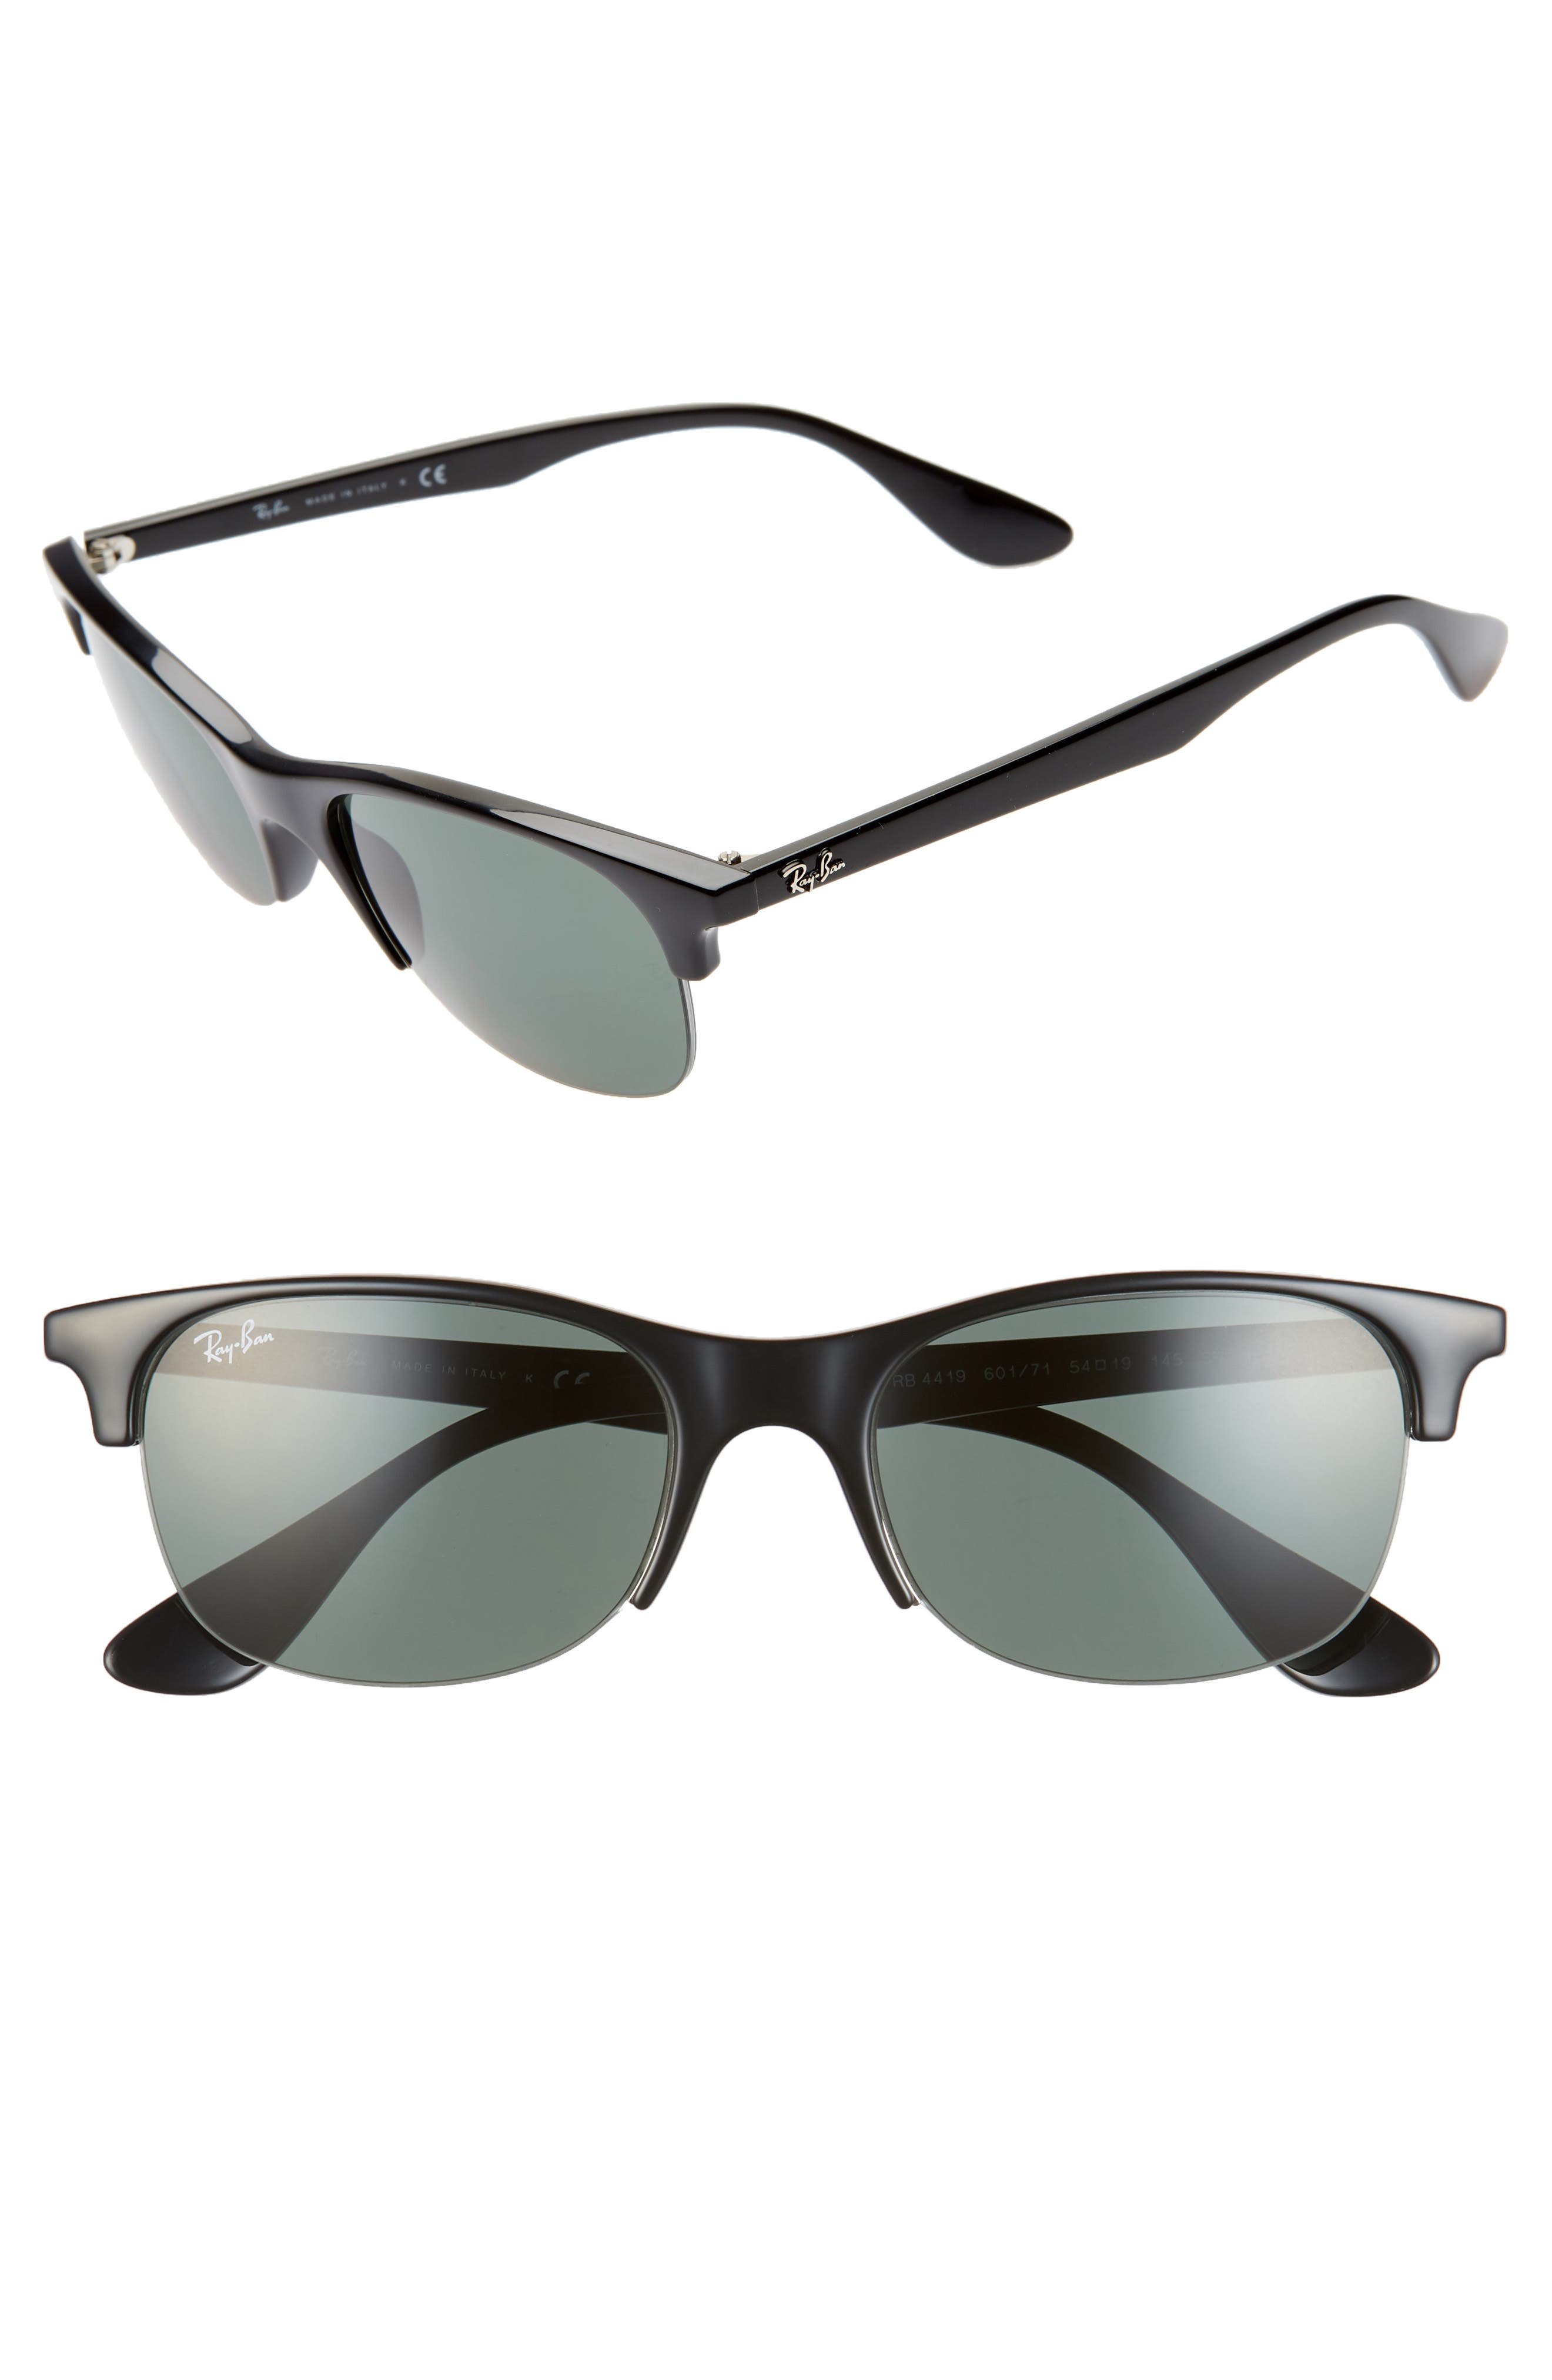 Ray-Ban 5m Clubmaster Sunglasses - Black Solid